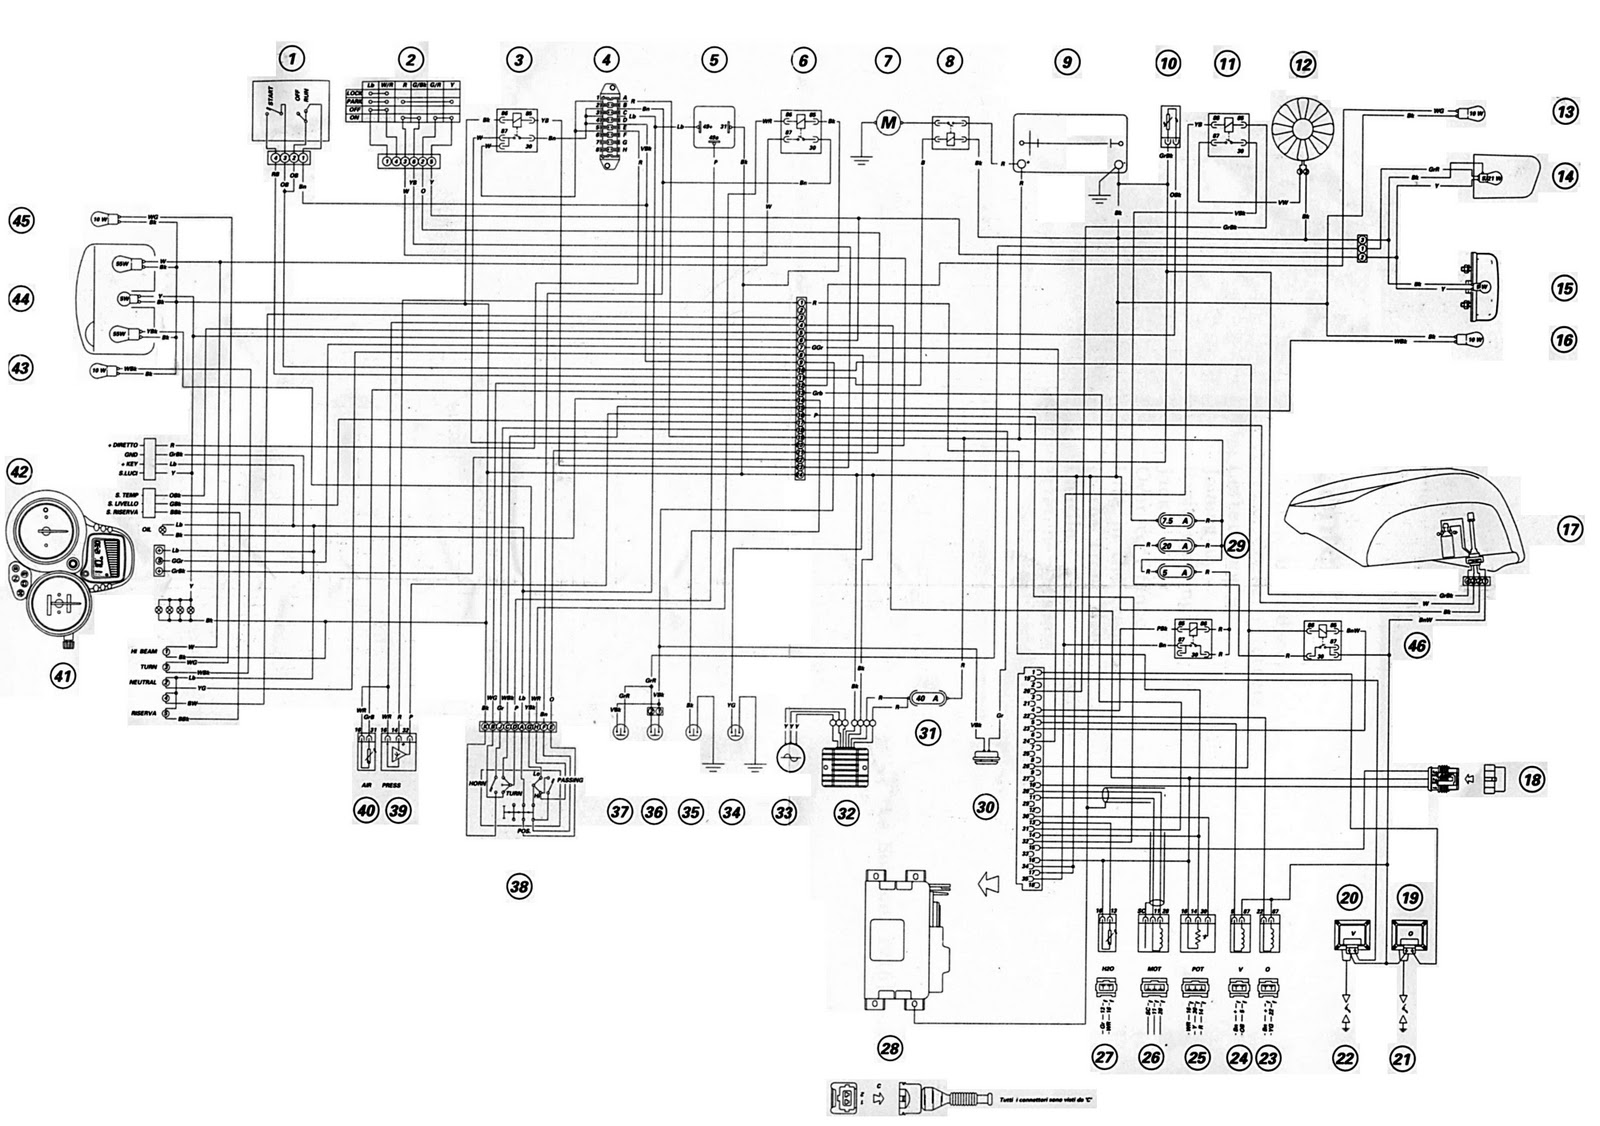 ducati engine diagram wiring library diagram box rh 20 mujk leopardgeckos wildeck de